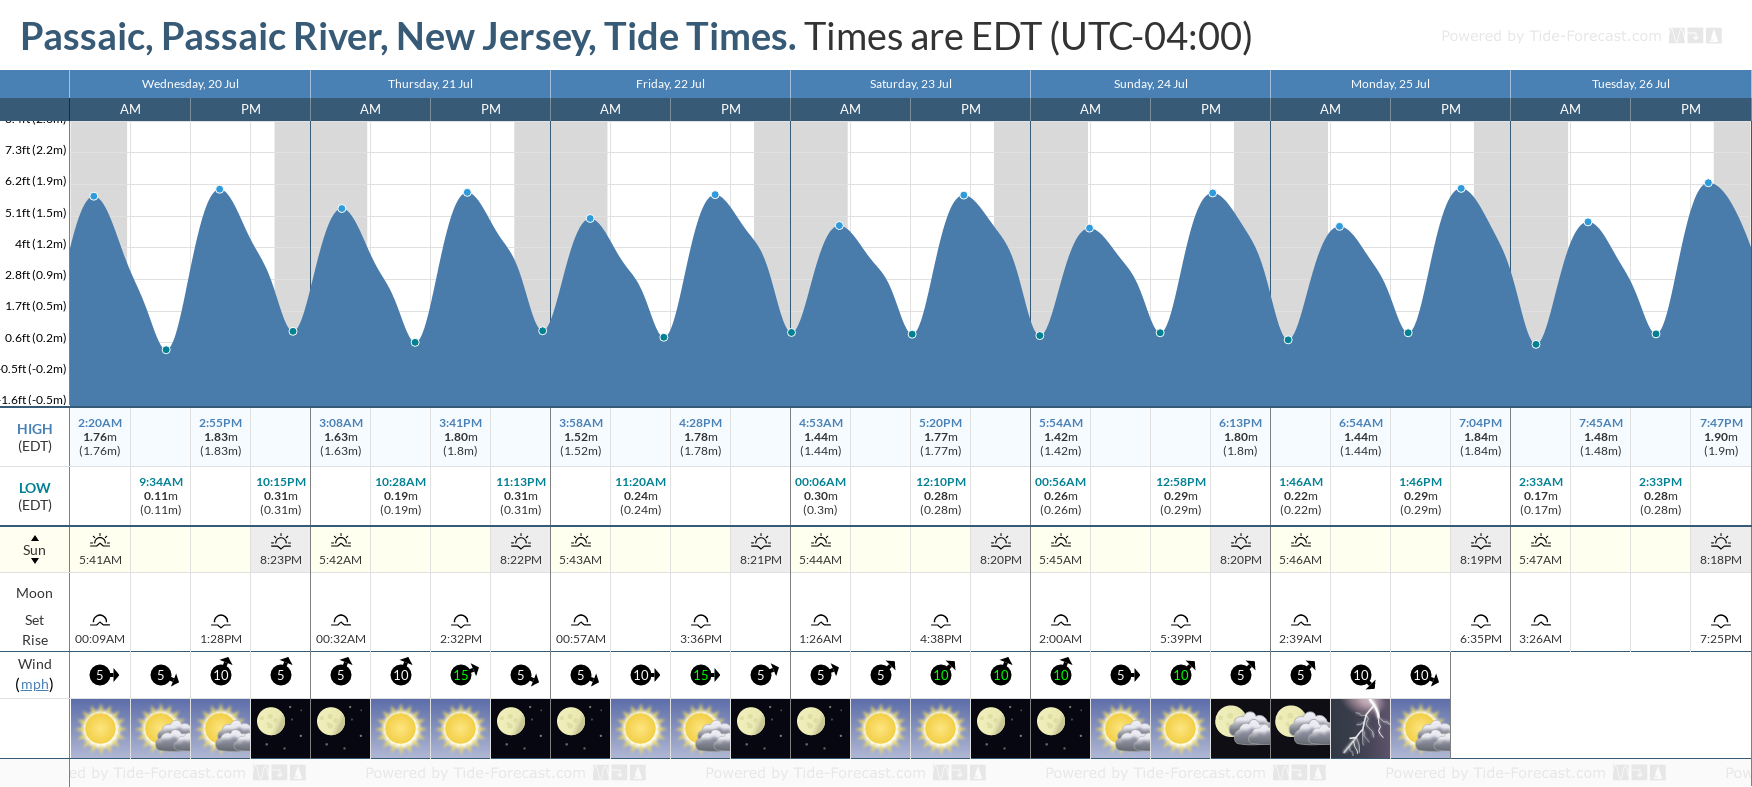 Passaic, Passaic River, New Jersey Tide Chart including high and low tide tide times for the next 7 days